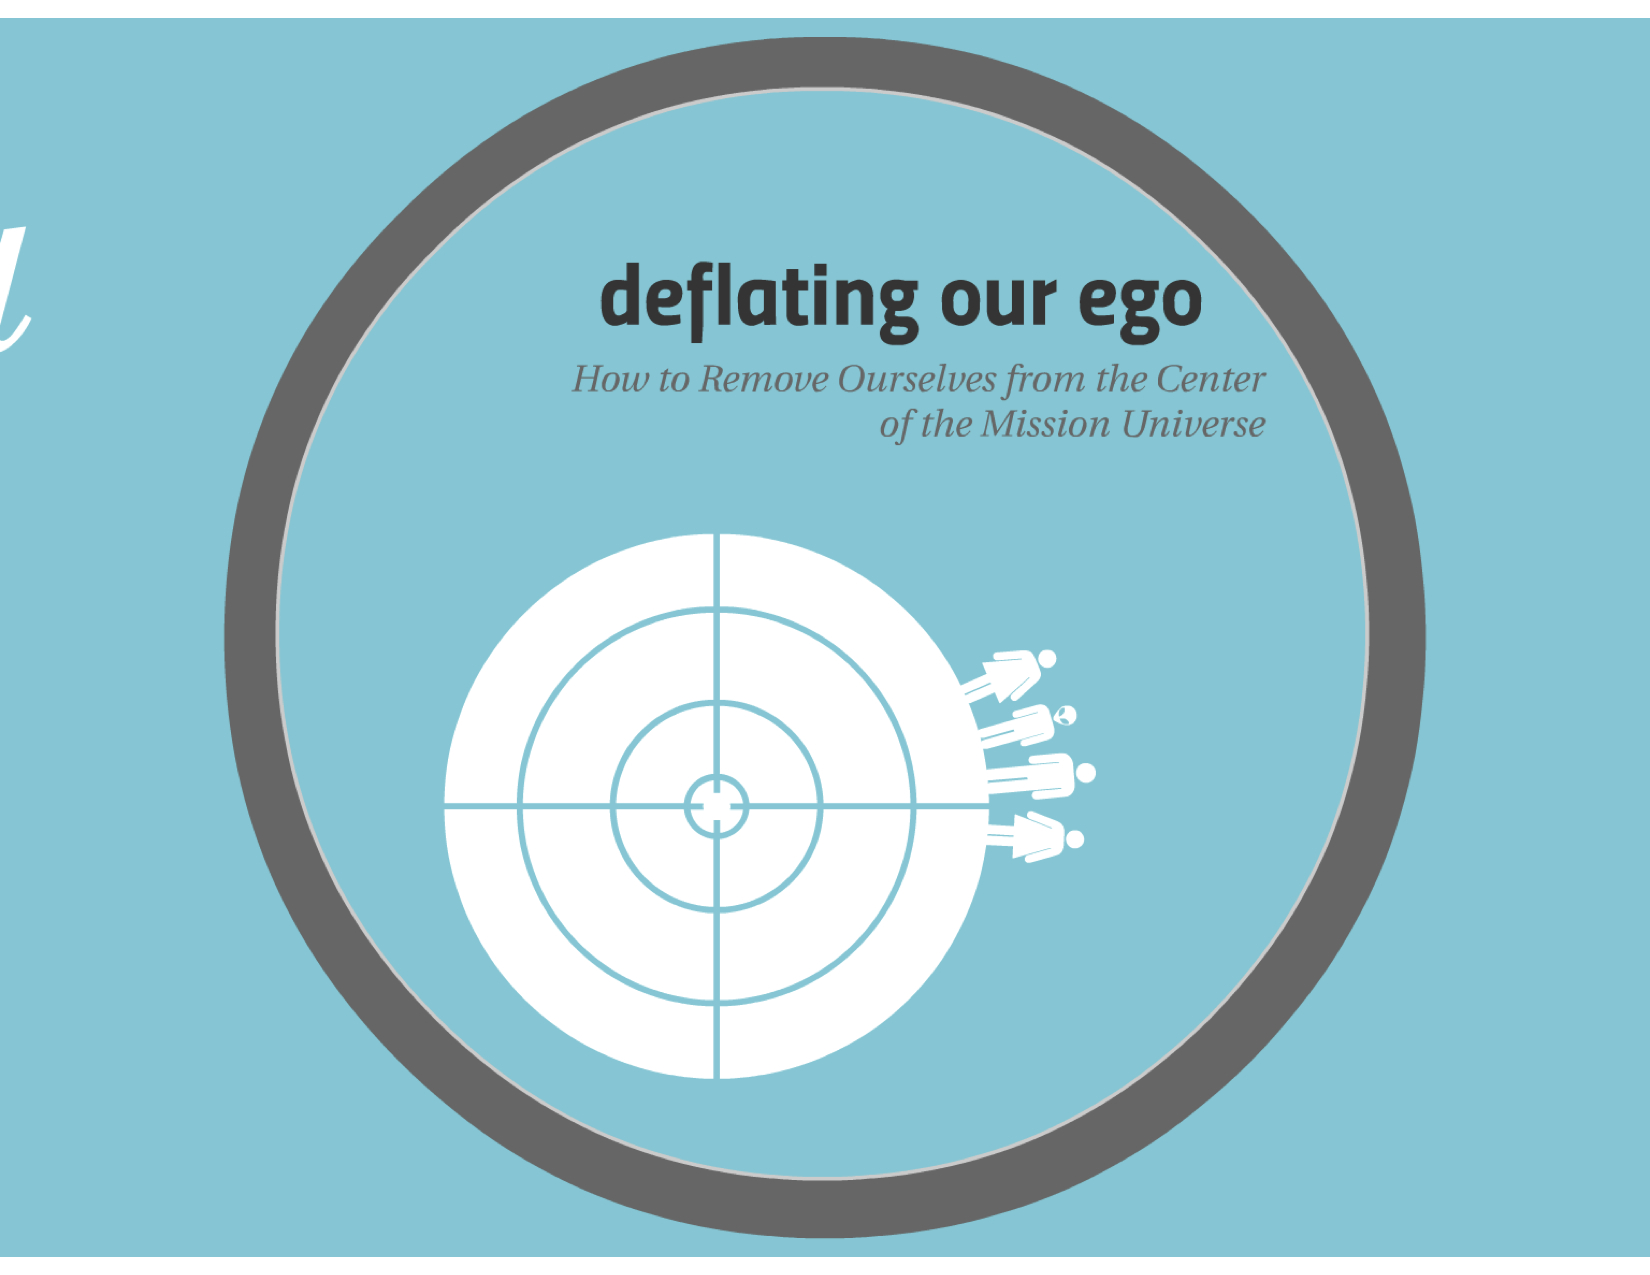 Deflating Our Ego